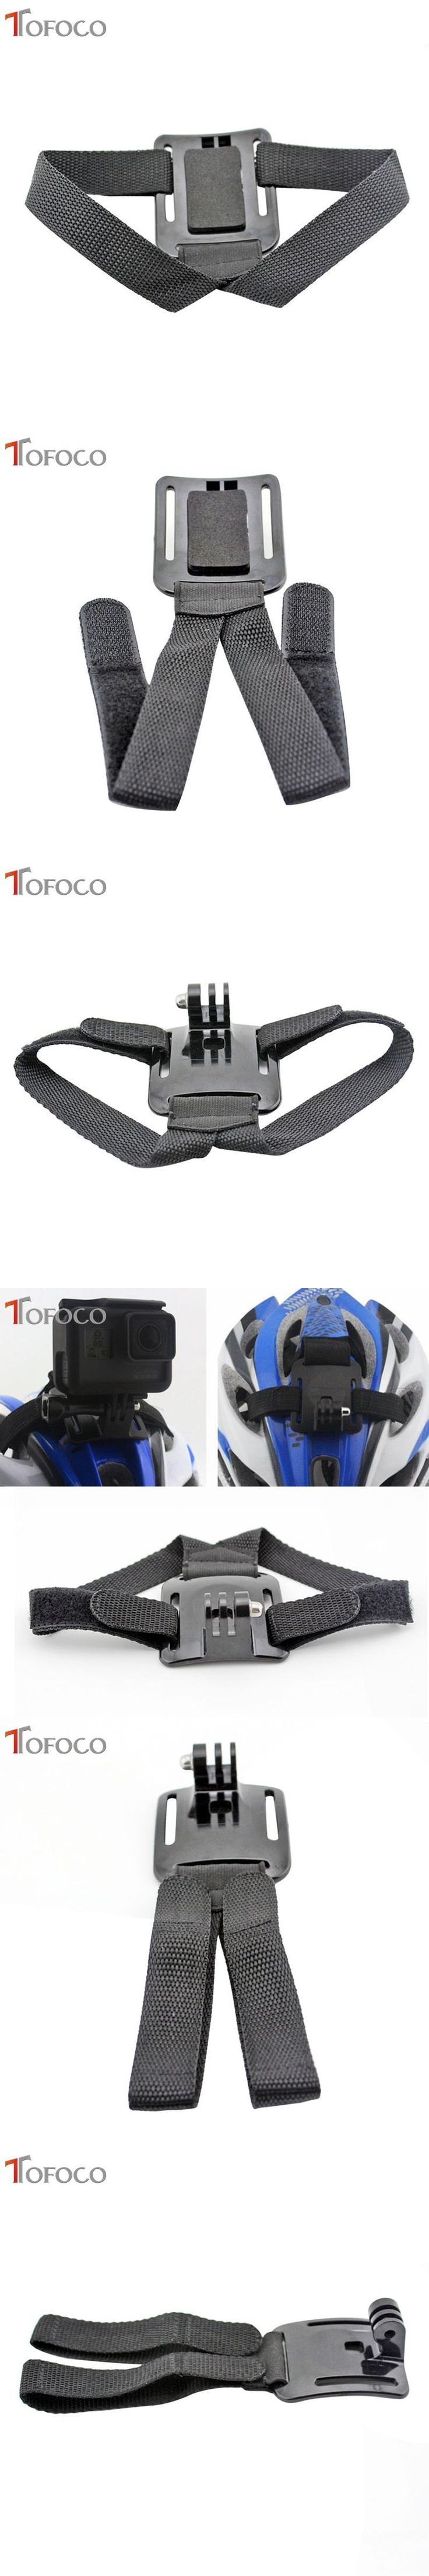 TOFOCO For Gopro Helmet Head Strap Belt Mount Camera Fixed Headband Size Adjustable Anti-Skid For Gopro Hero HD 2 3 3+ 4